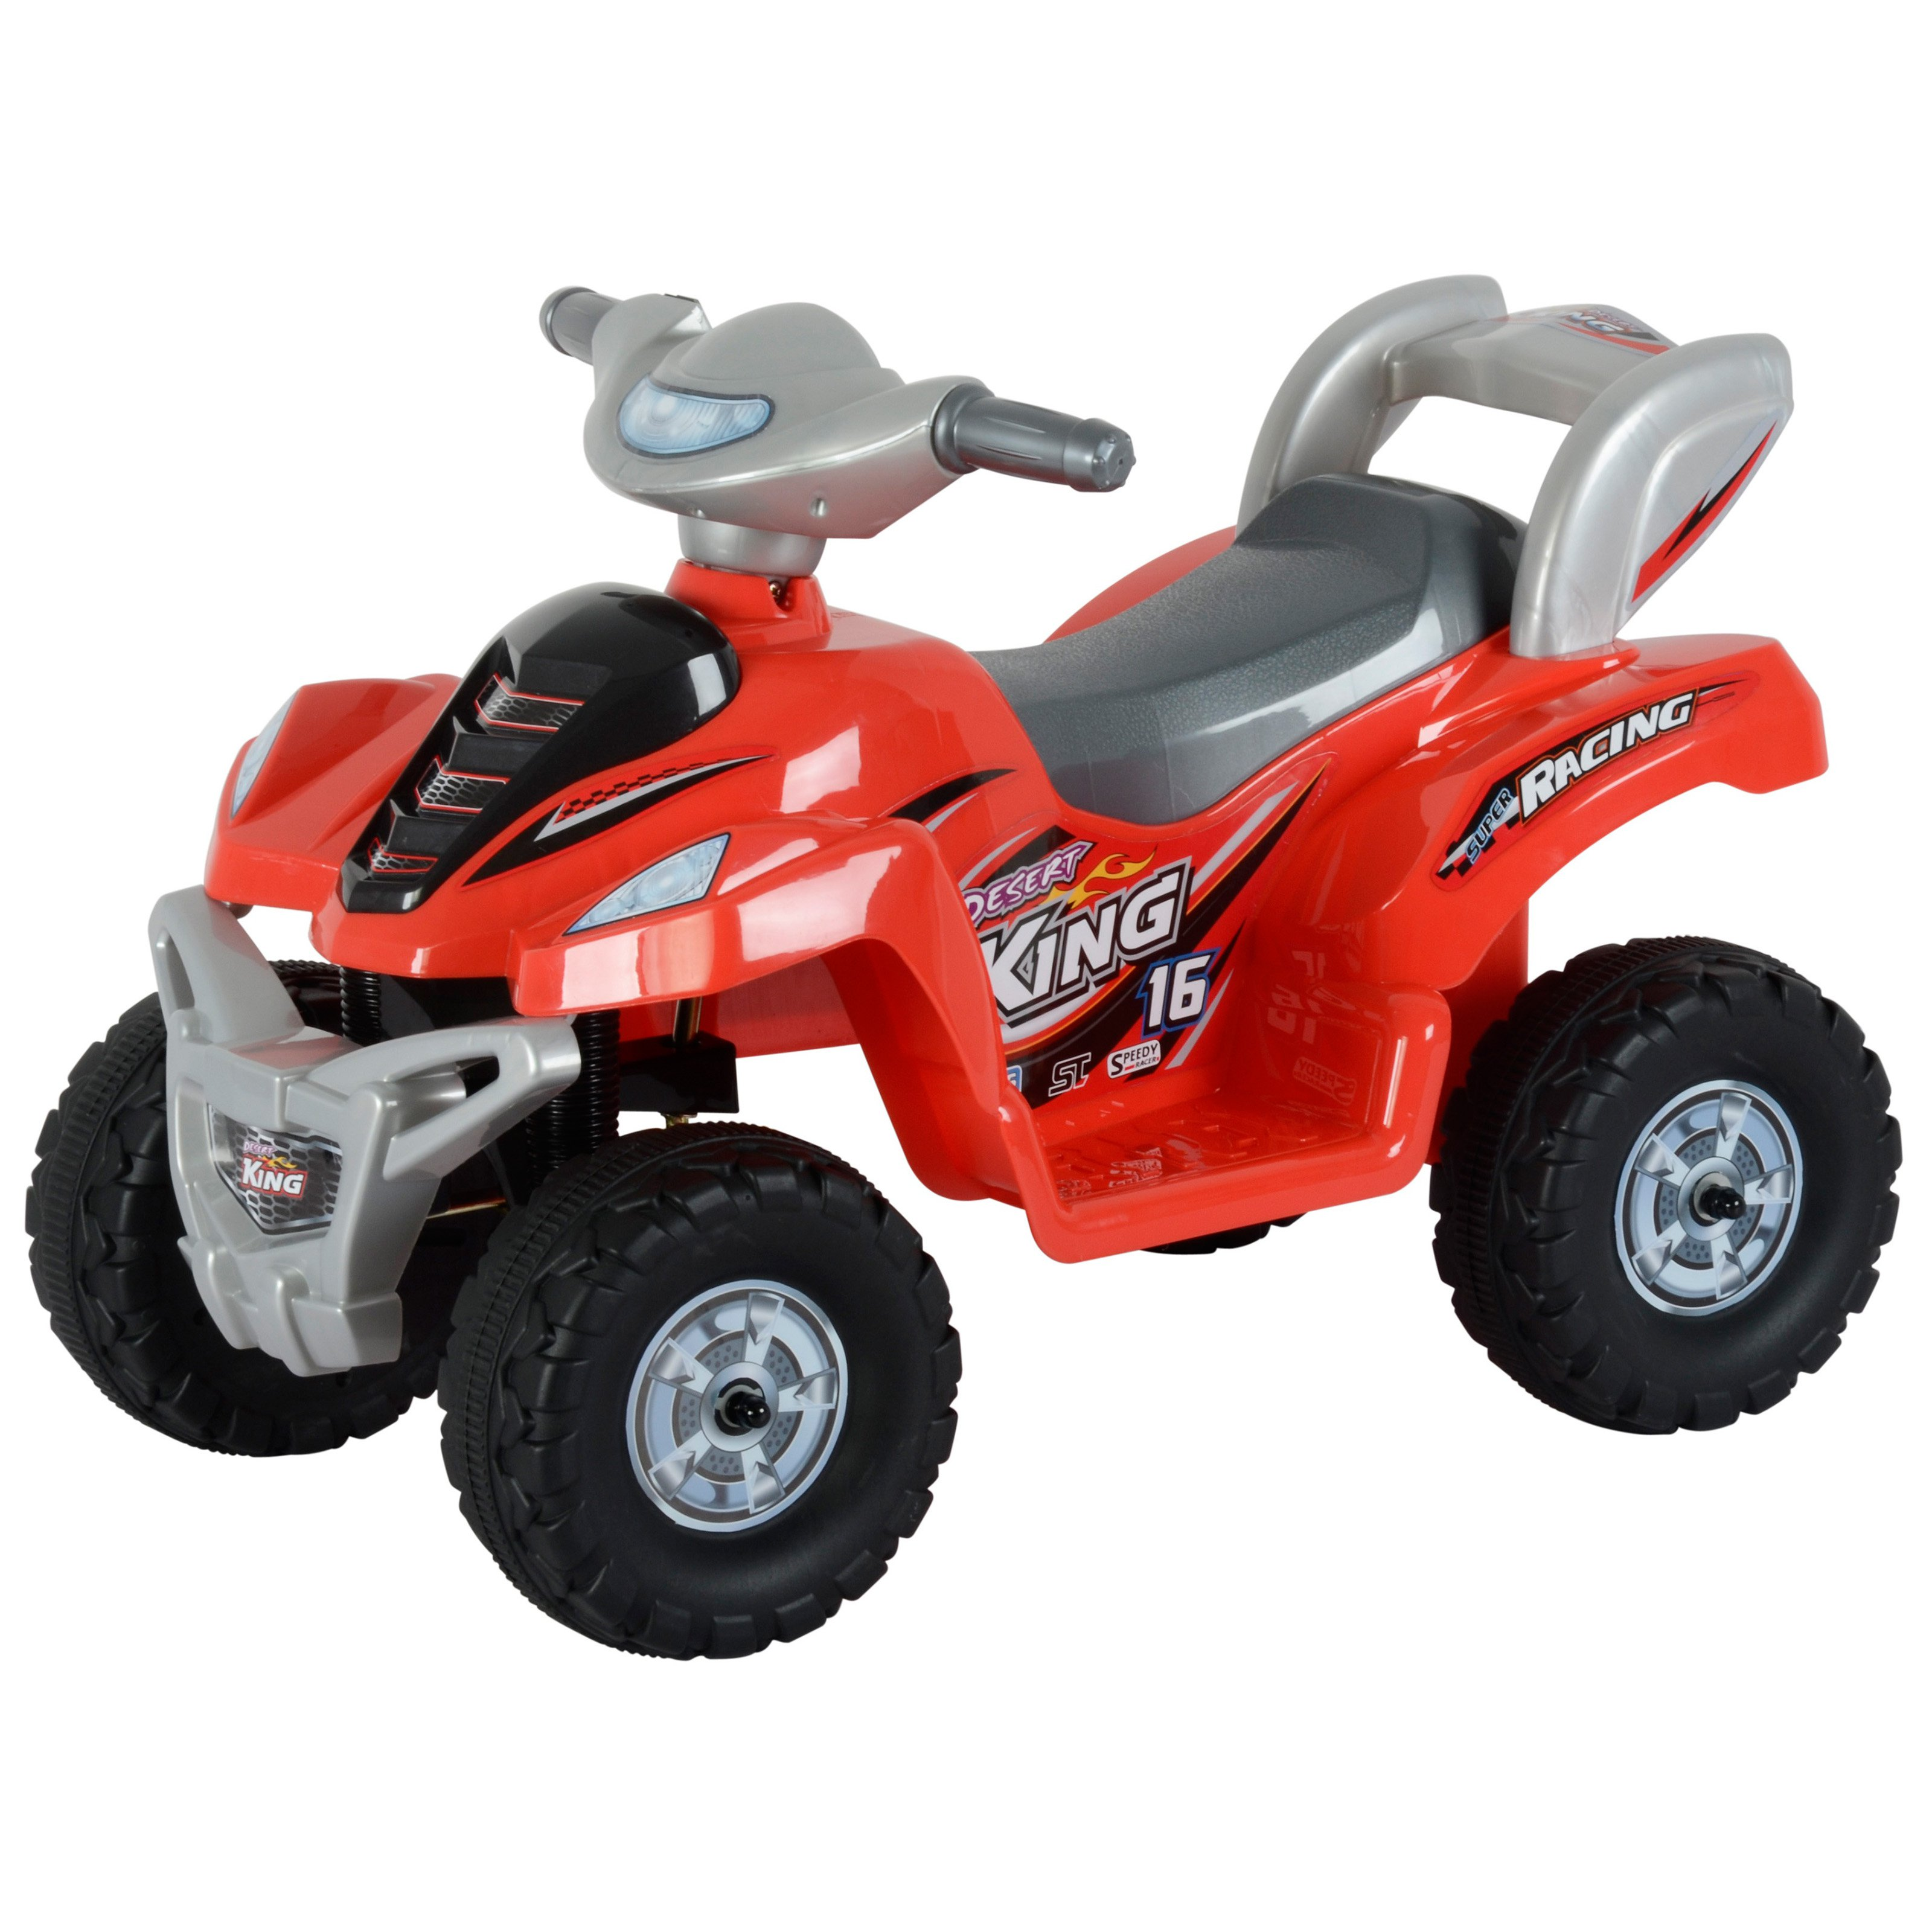 Best Ride on Cars Little ATV Battery Powered Riding Toy